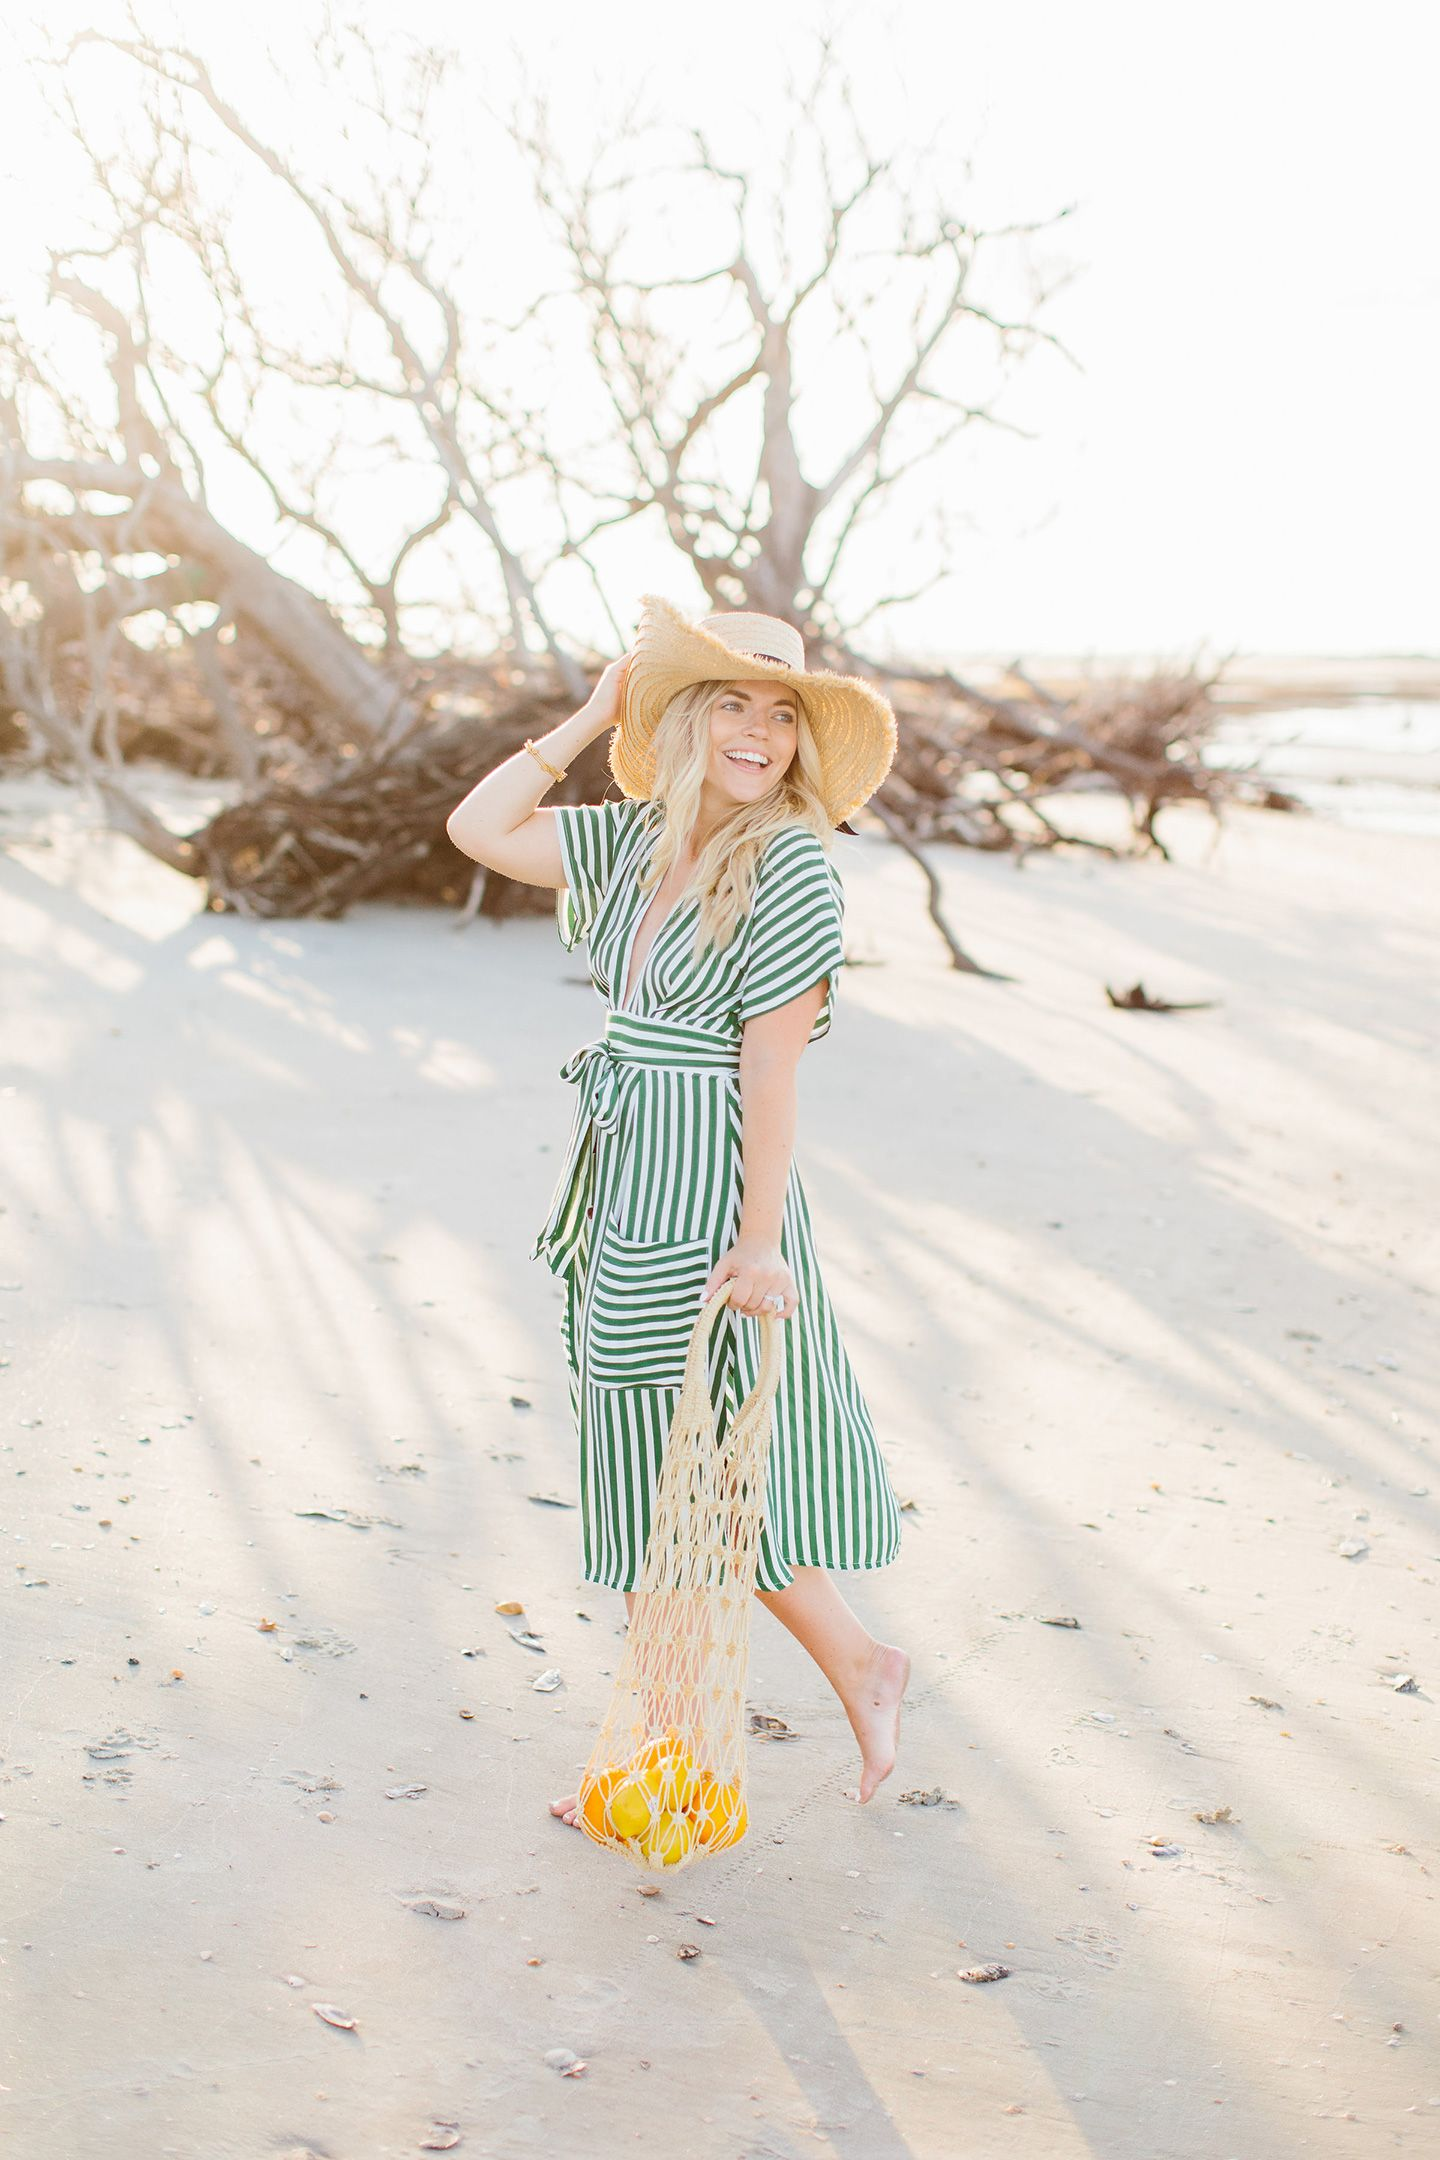 Color By K Green Striped Midi Dress By The Sea Green Stripes Striped Midi Dress Vacay Outfits [ 2160 x 1440 Pixel ]